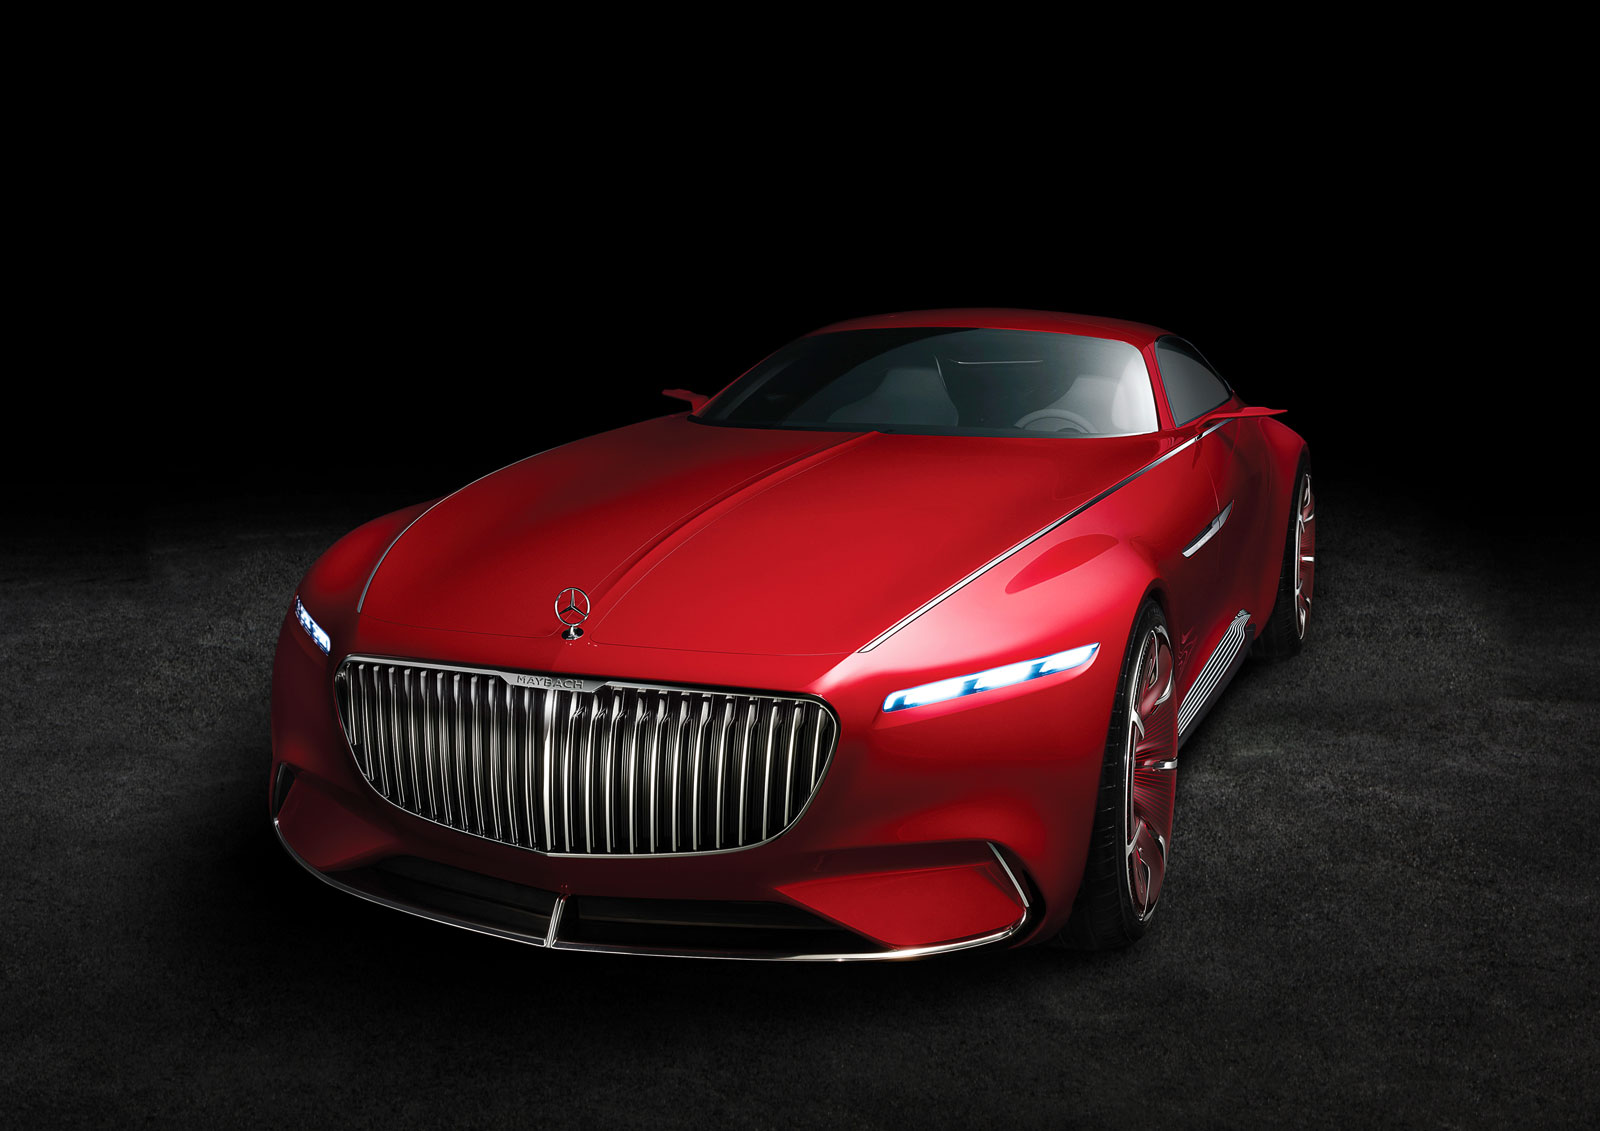 vision mercedes maybach 6 is a six meter long electric super coupe car body design. Black Bedroom Furniture Sets. Home Design Ideas